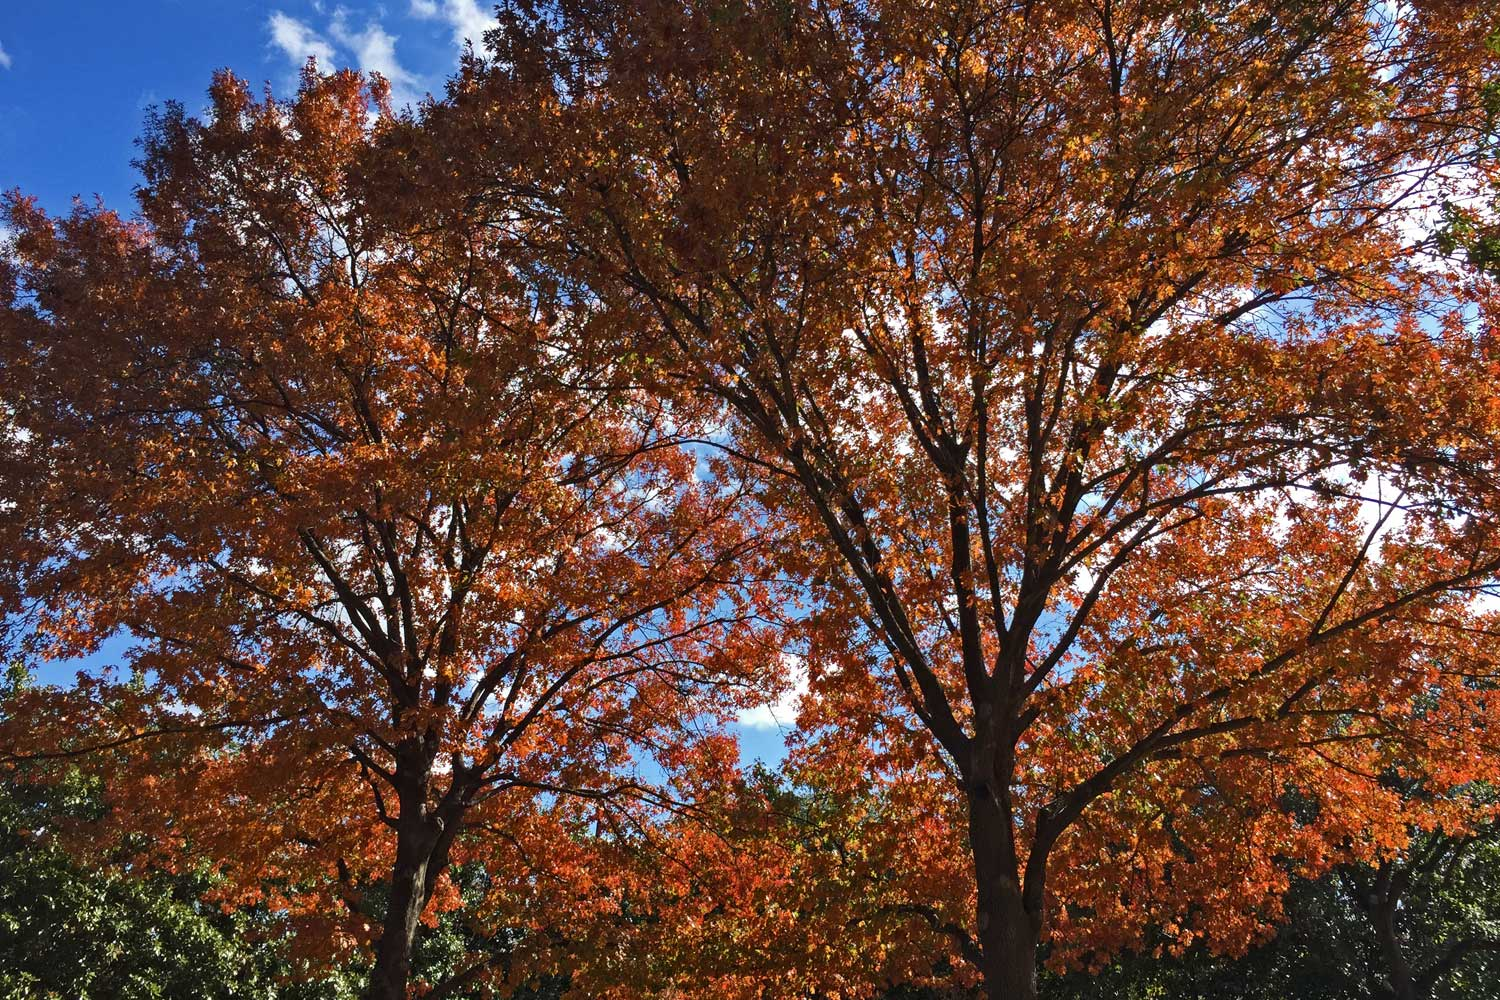 Red Oak trees providing a wonderful golden orange color. (Quercus shumardii)